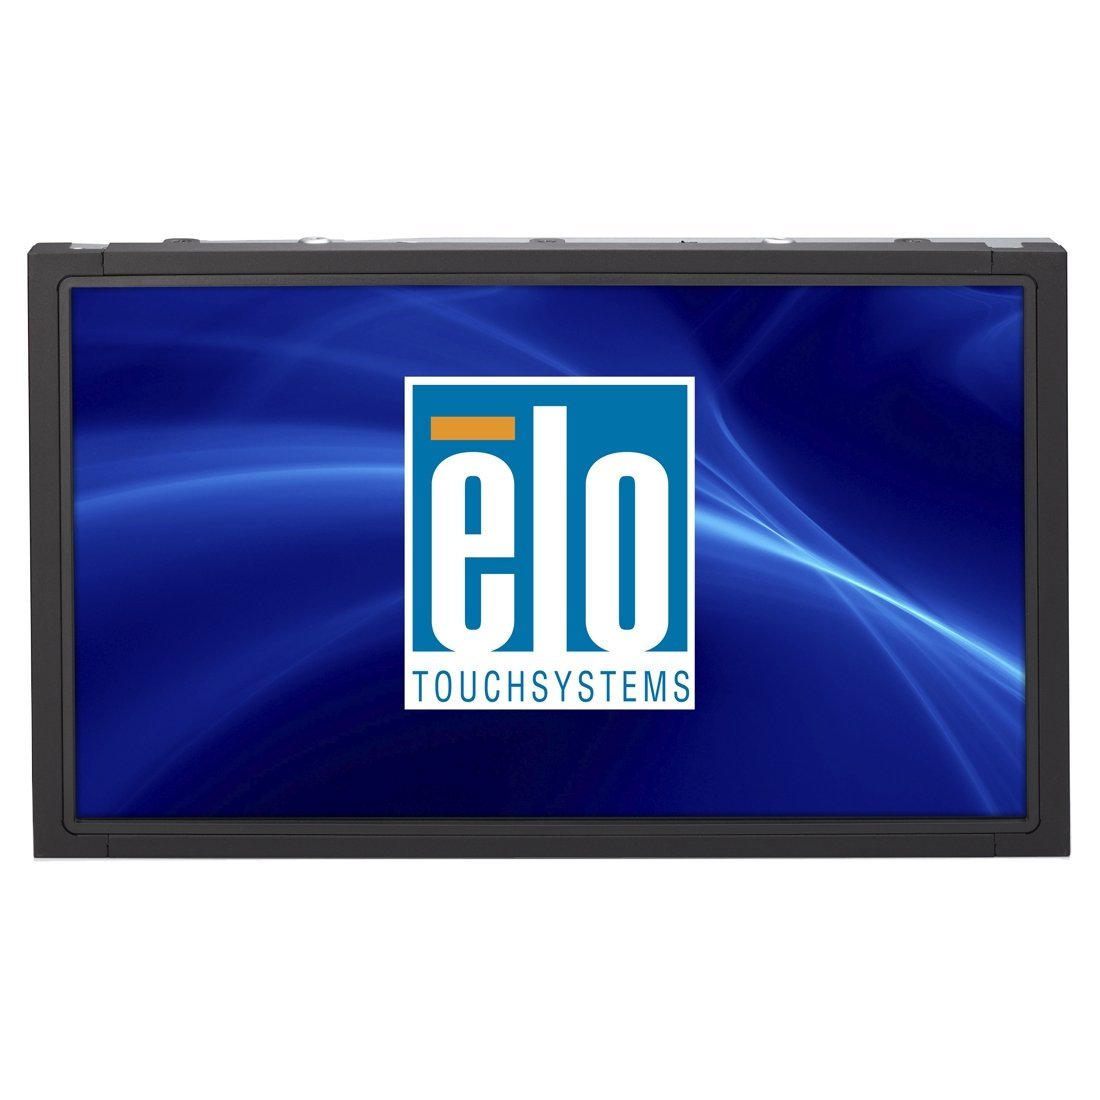 Elo E606625 Open-Frame Touch monitors 1541L IntelliTouch Plus 15.6'' 720p LED-Backlit LCD Monitor